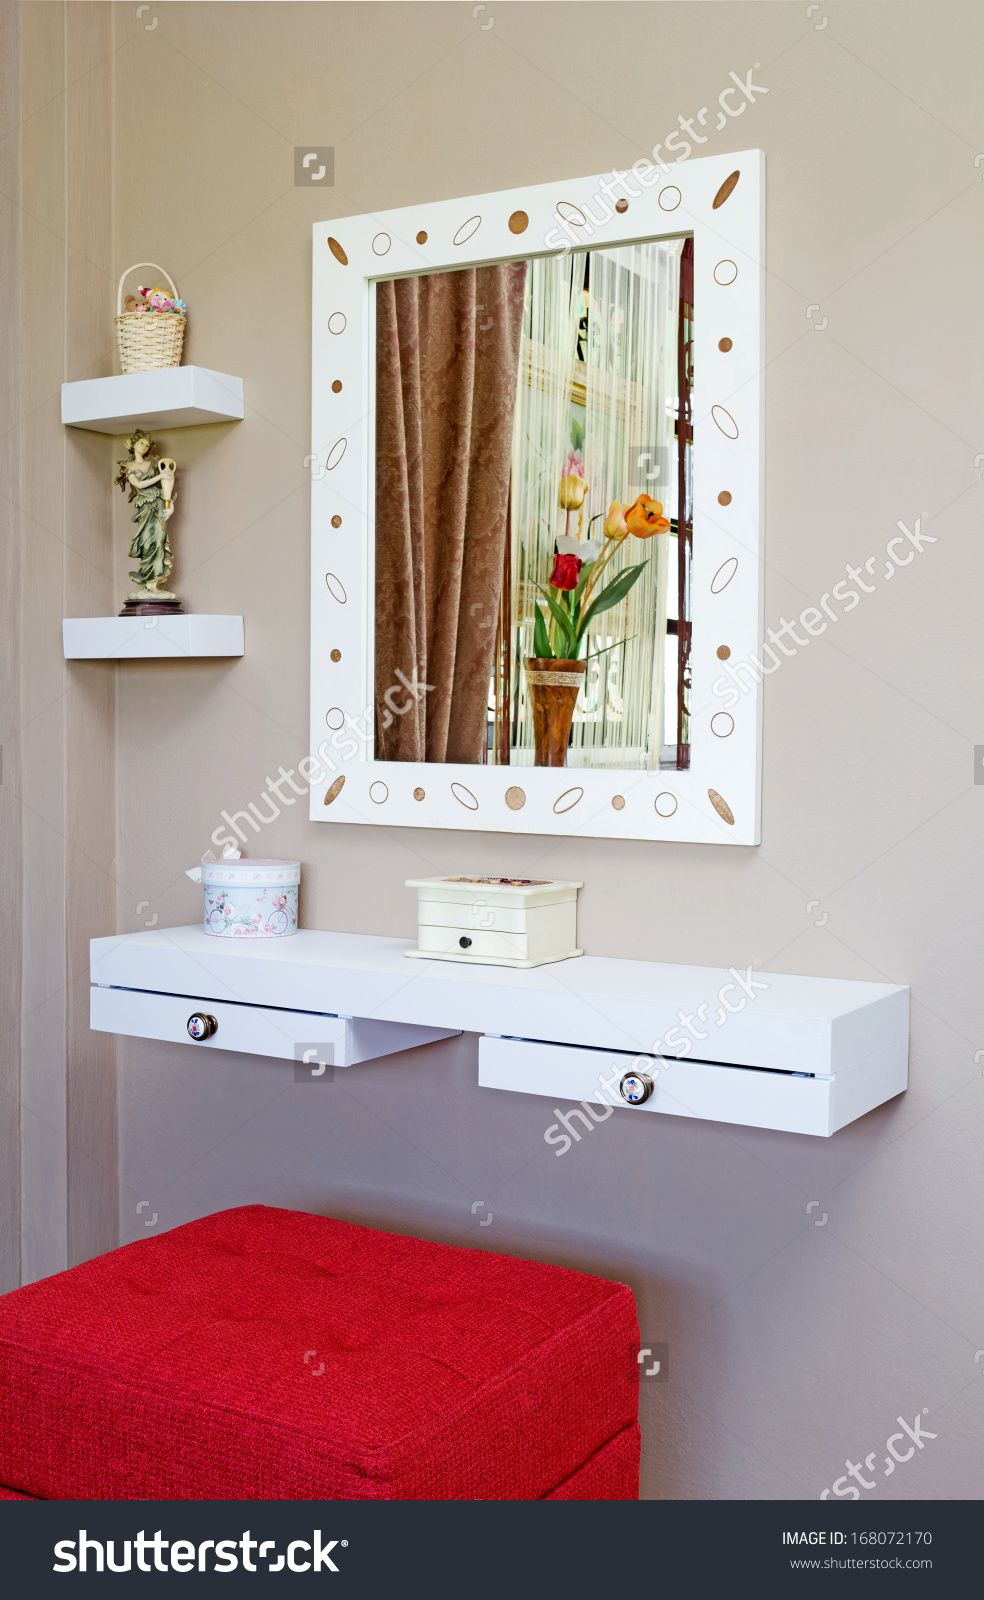 vanity table for small space. Explore these ideas and more  Jessica McClintock Bedroom Vanity Set Pin by Kathryn Connolly on Pinterest